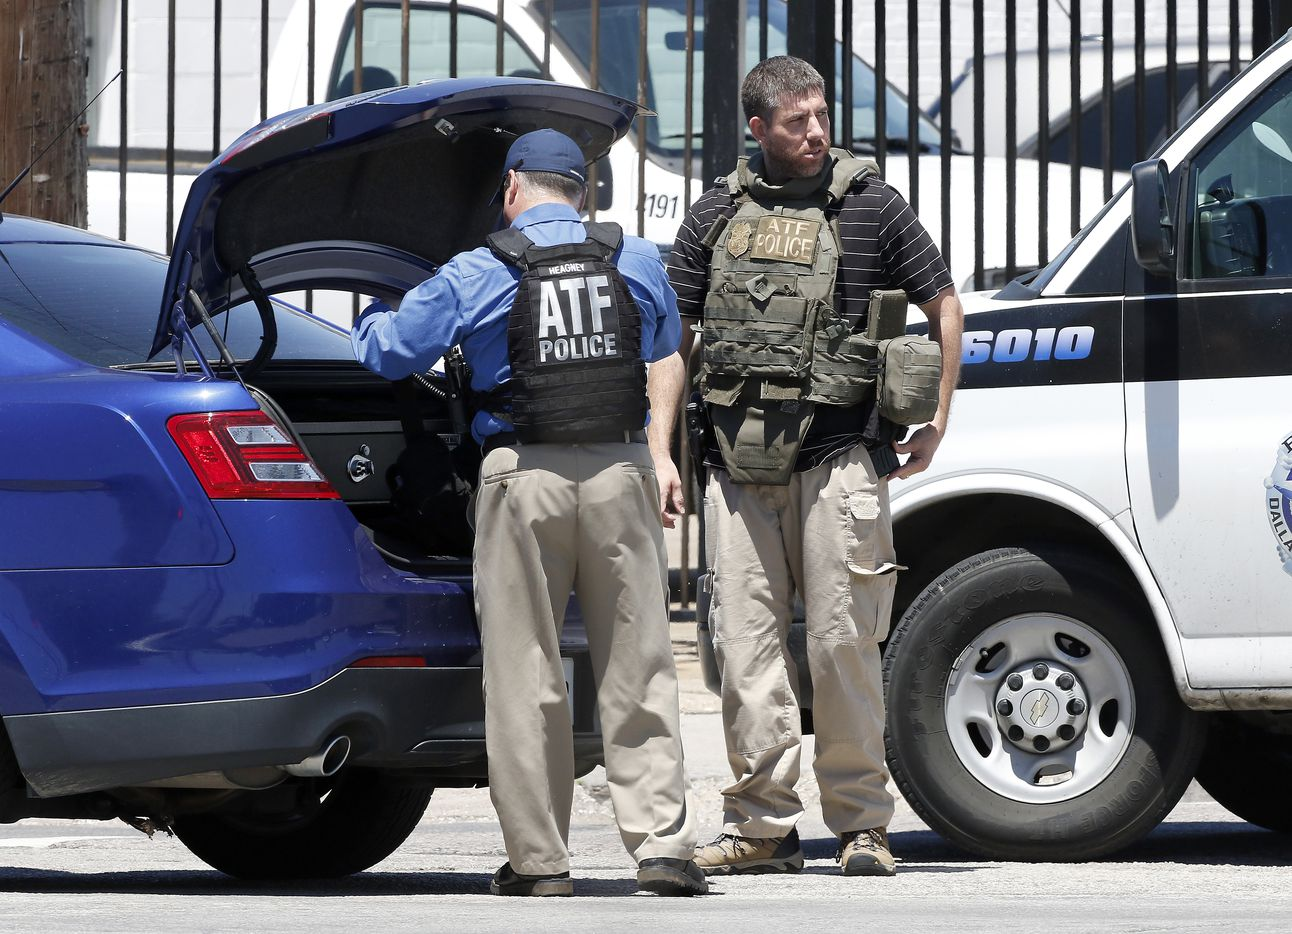 Two ATF agents arrive at the active shooting scene where a Dallas Fire-Rescue paramedic has been shot on Dolphin Road in Dallas, Monday, May 1, 2017. (Jae S. Lee/The Dallas Morning News)